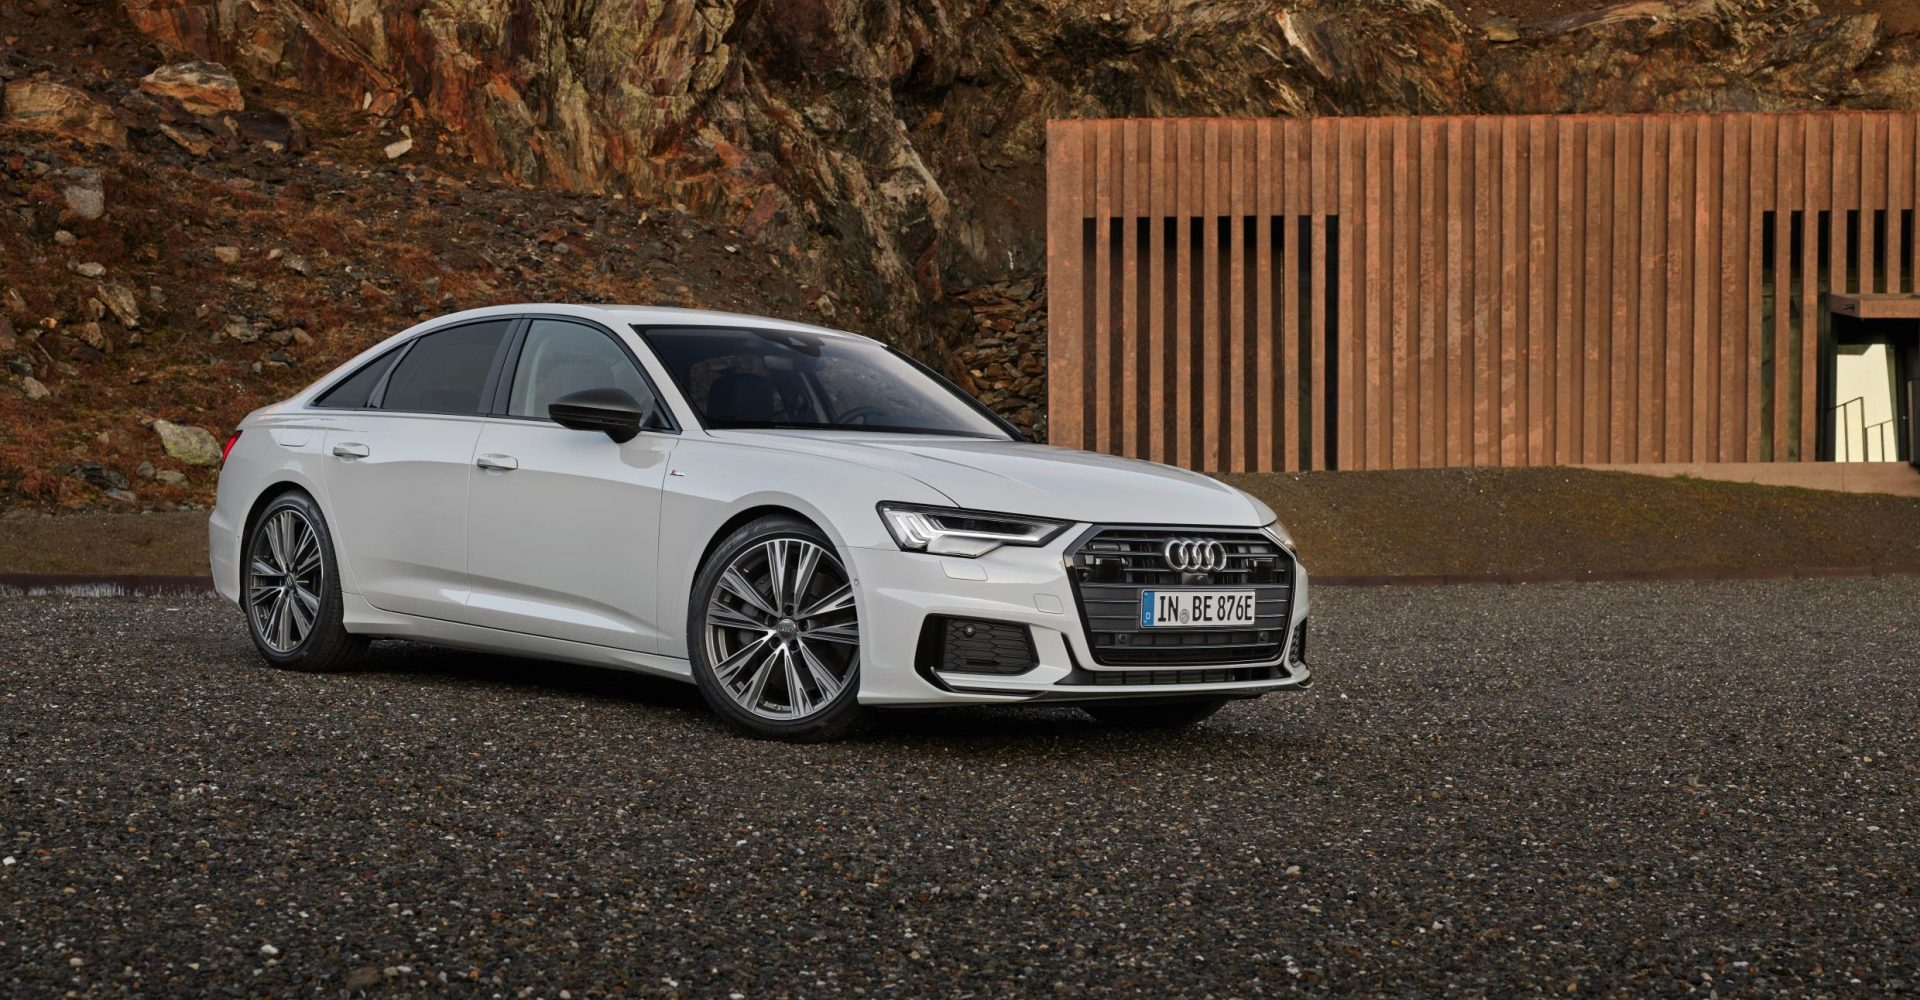 Pricing revealed for company car tax-friendly Audi A6 plug-in hybrid model